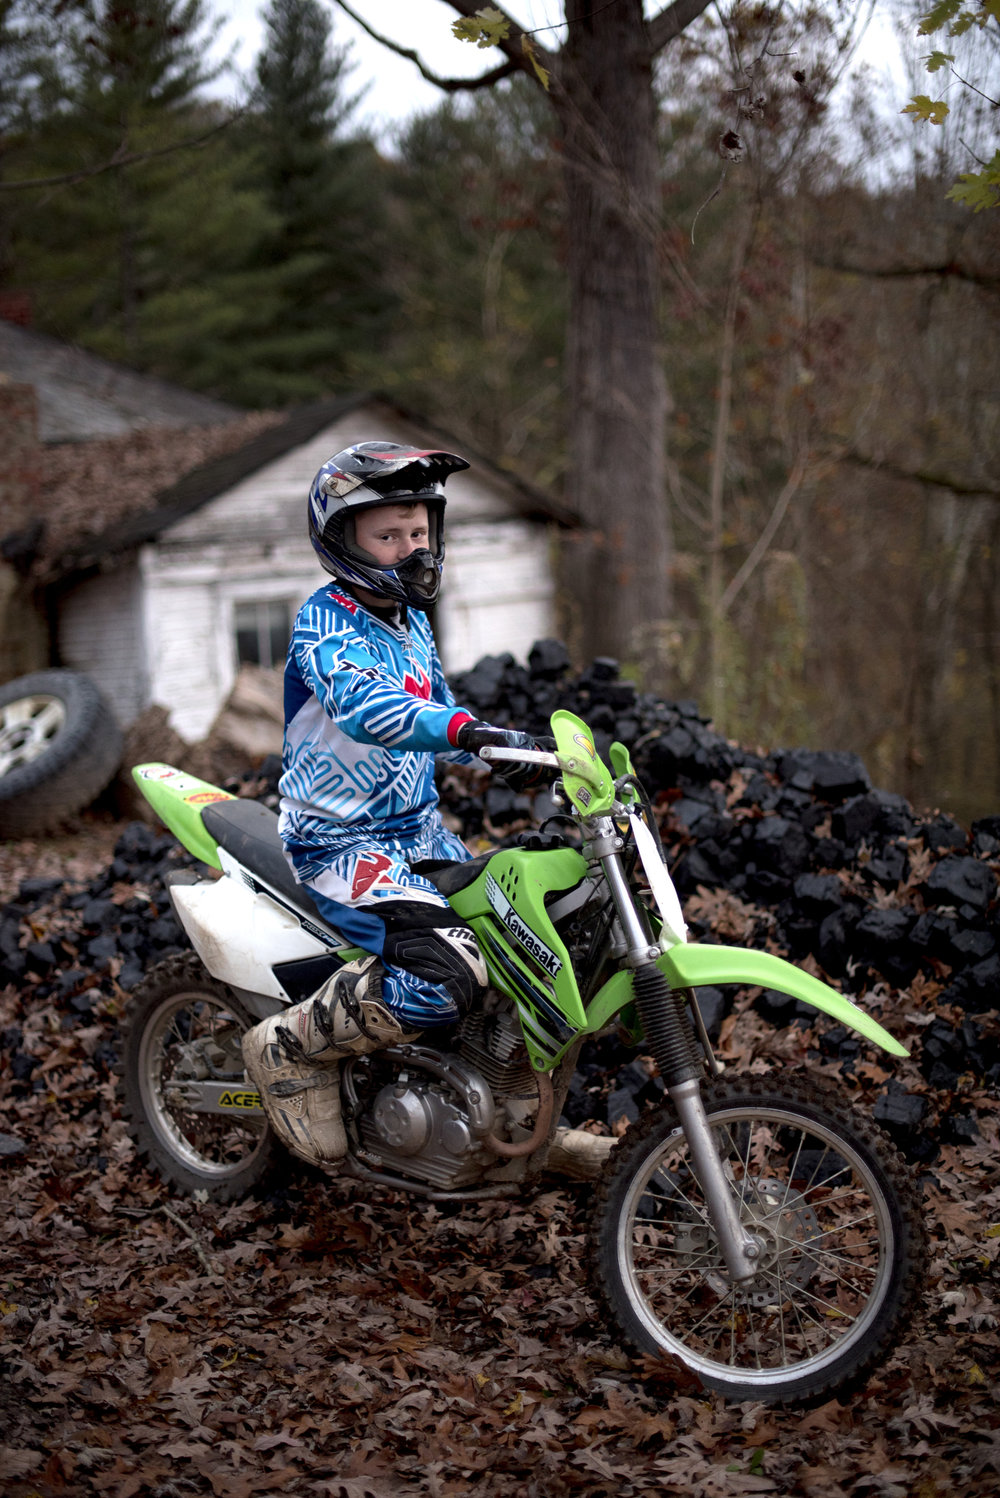 Christopher McDonald, 13, of Murray City, Ohio poses for a portrait on his dirtbike outside his home on Nov. 9, 2016. McDonald is entering his first dirtbike race this coming weekend. Behind McDonald is a pile of unprocessed coal that his family uses for heat in the winter. McDonald's father works at the Buckingham Coal Mine.